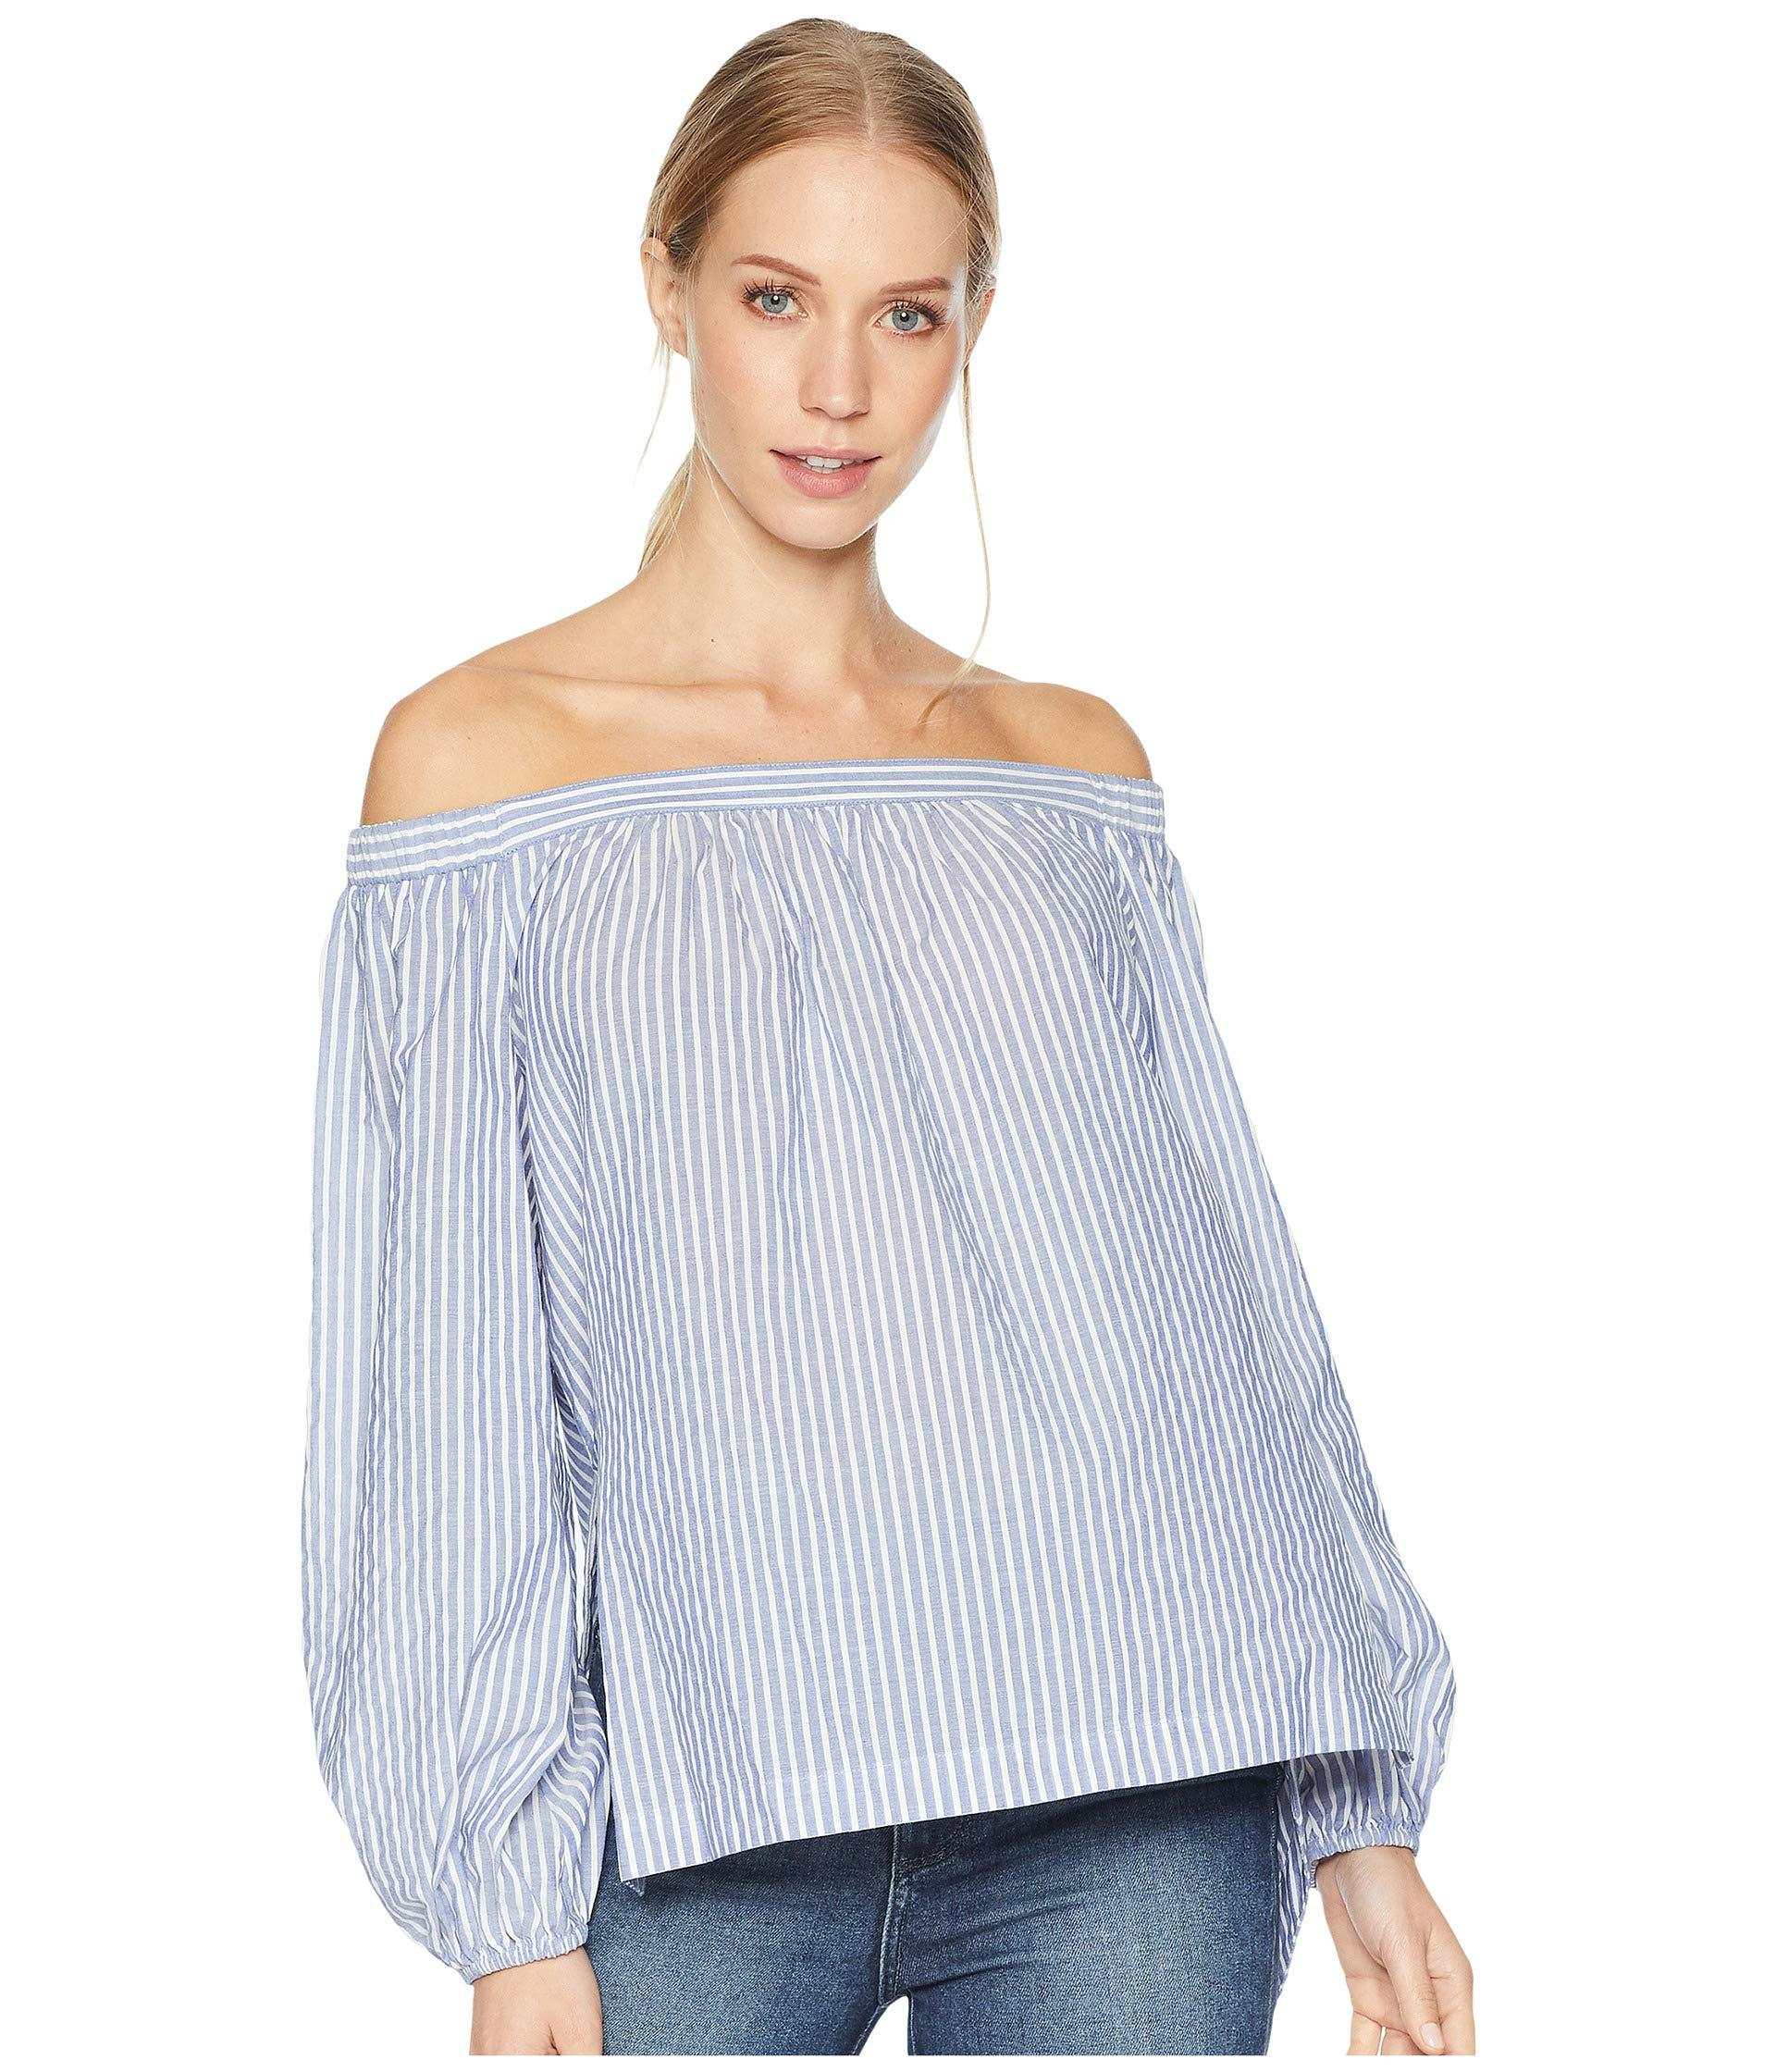 569f0d9bccb9a1 Lyst - BCBGMAXAZRIA Elsie Off Shoulder Peasant Sleeve Top in Blue ...